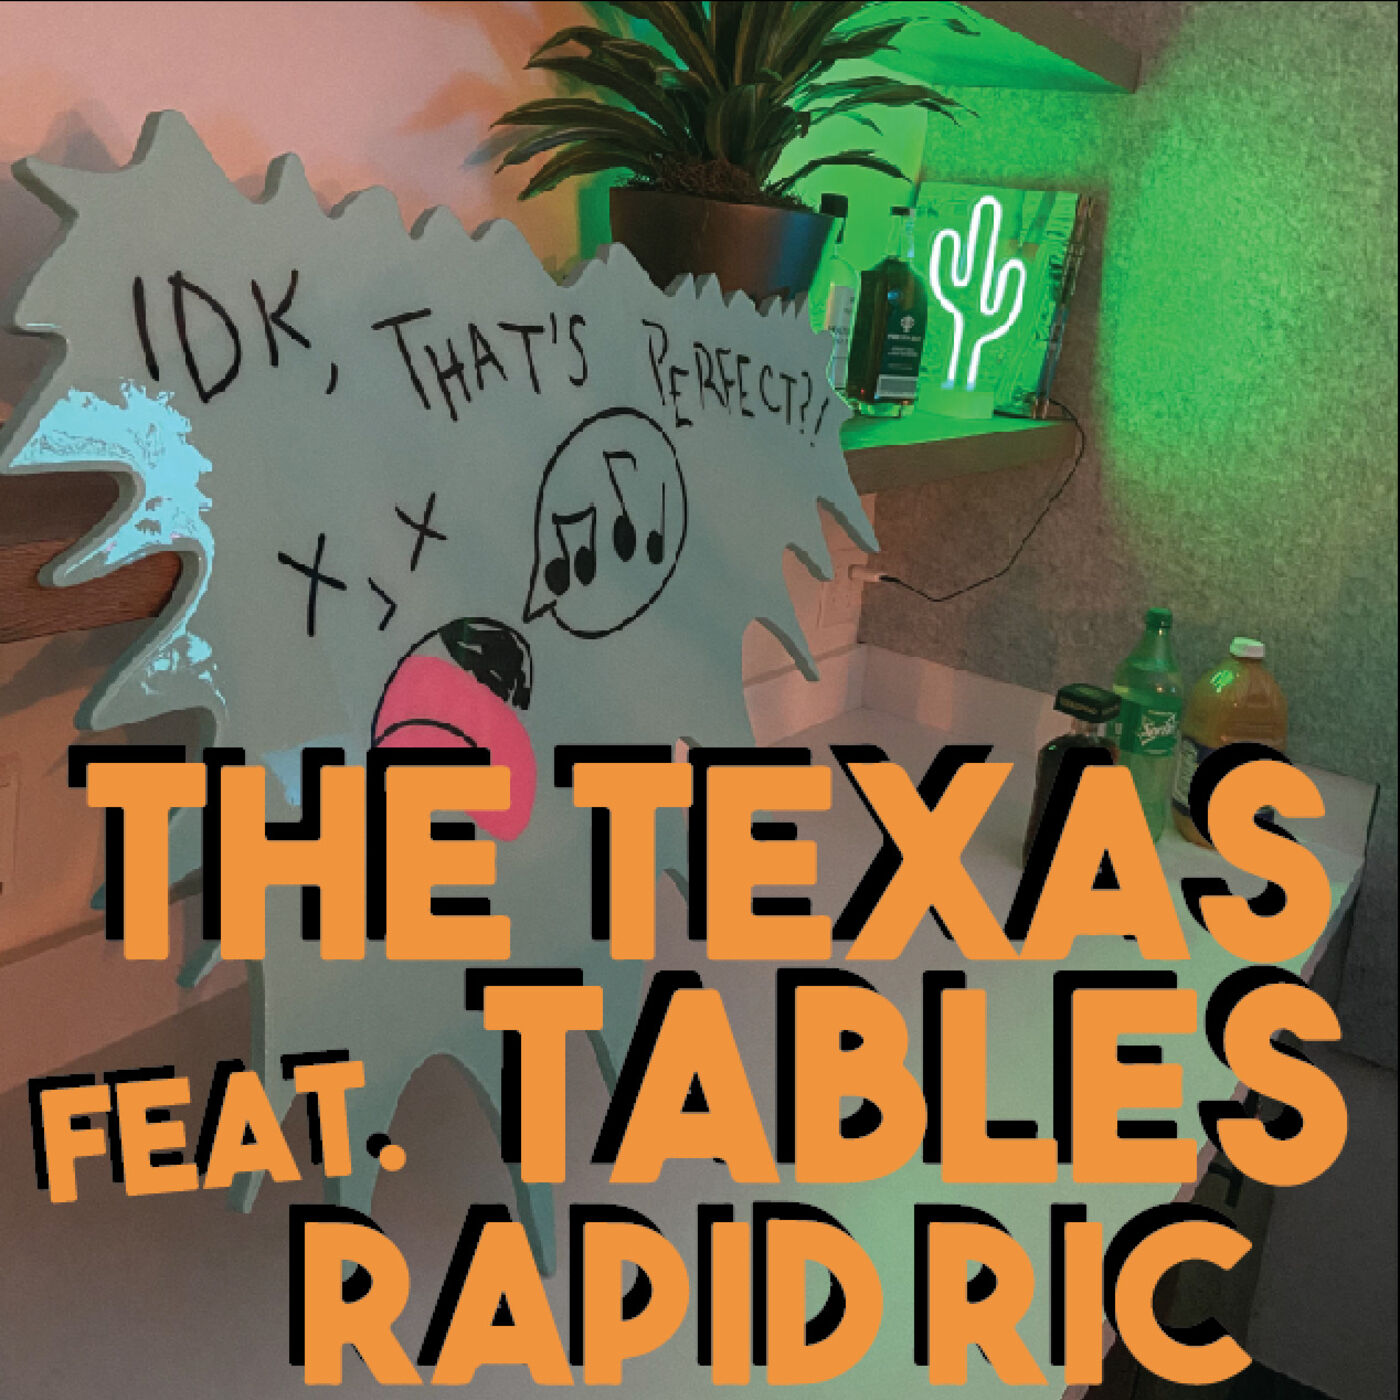 IDK, That's The Texas Tables Feat. Rapid Ric?!